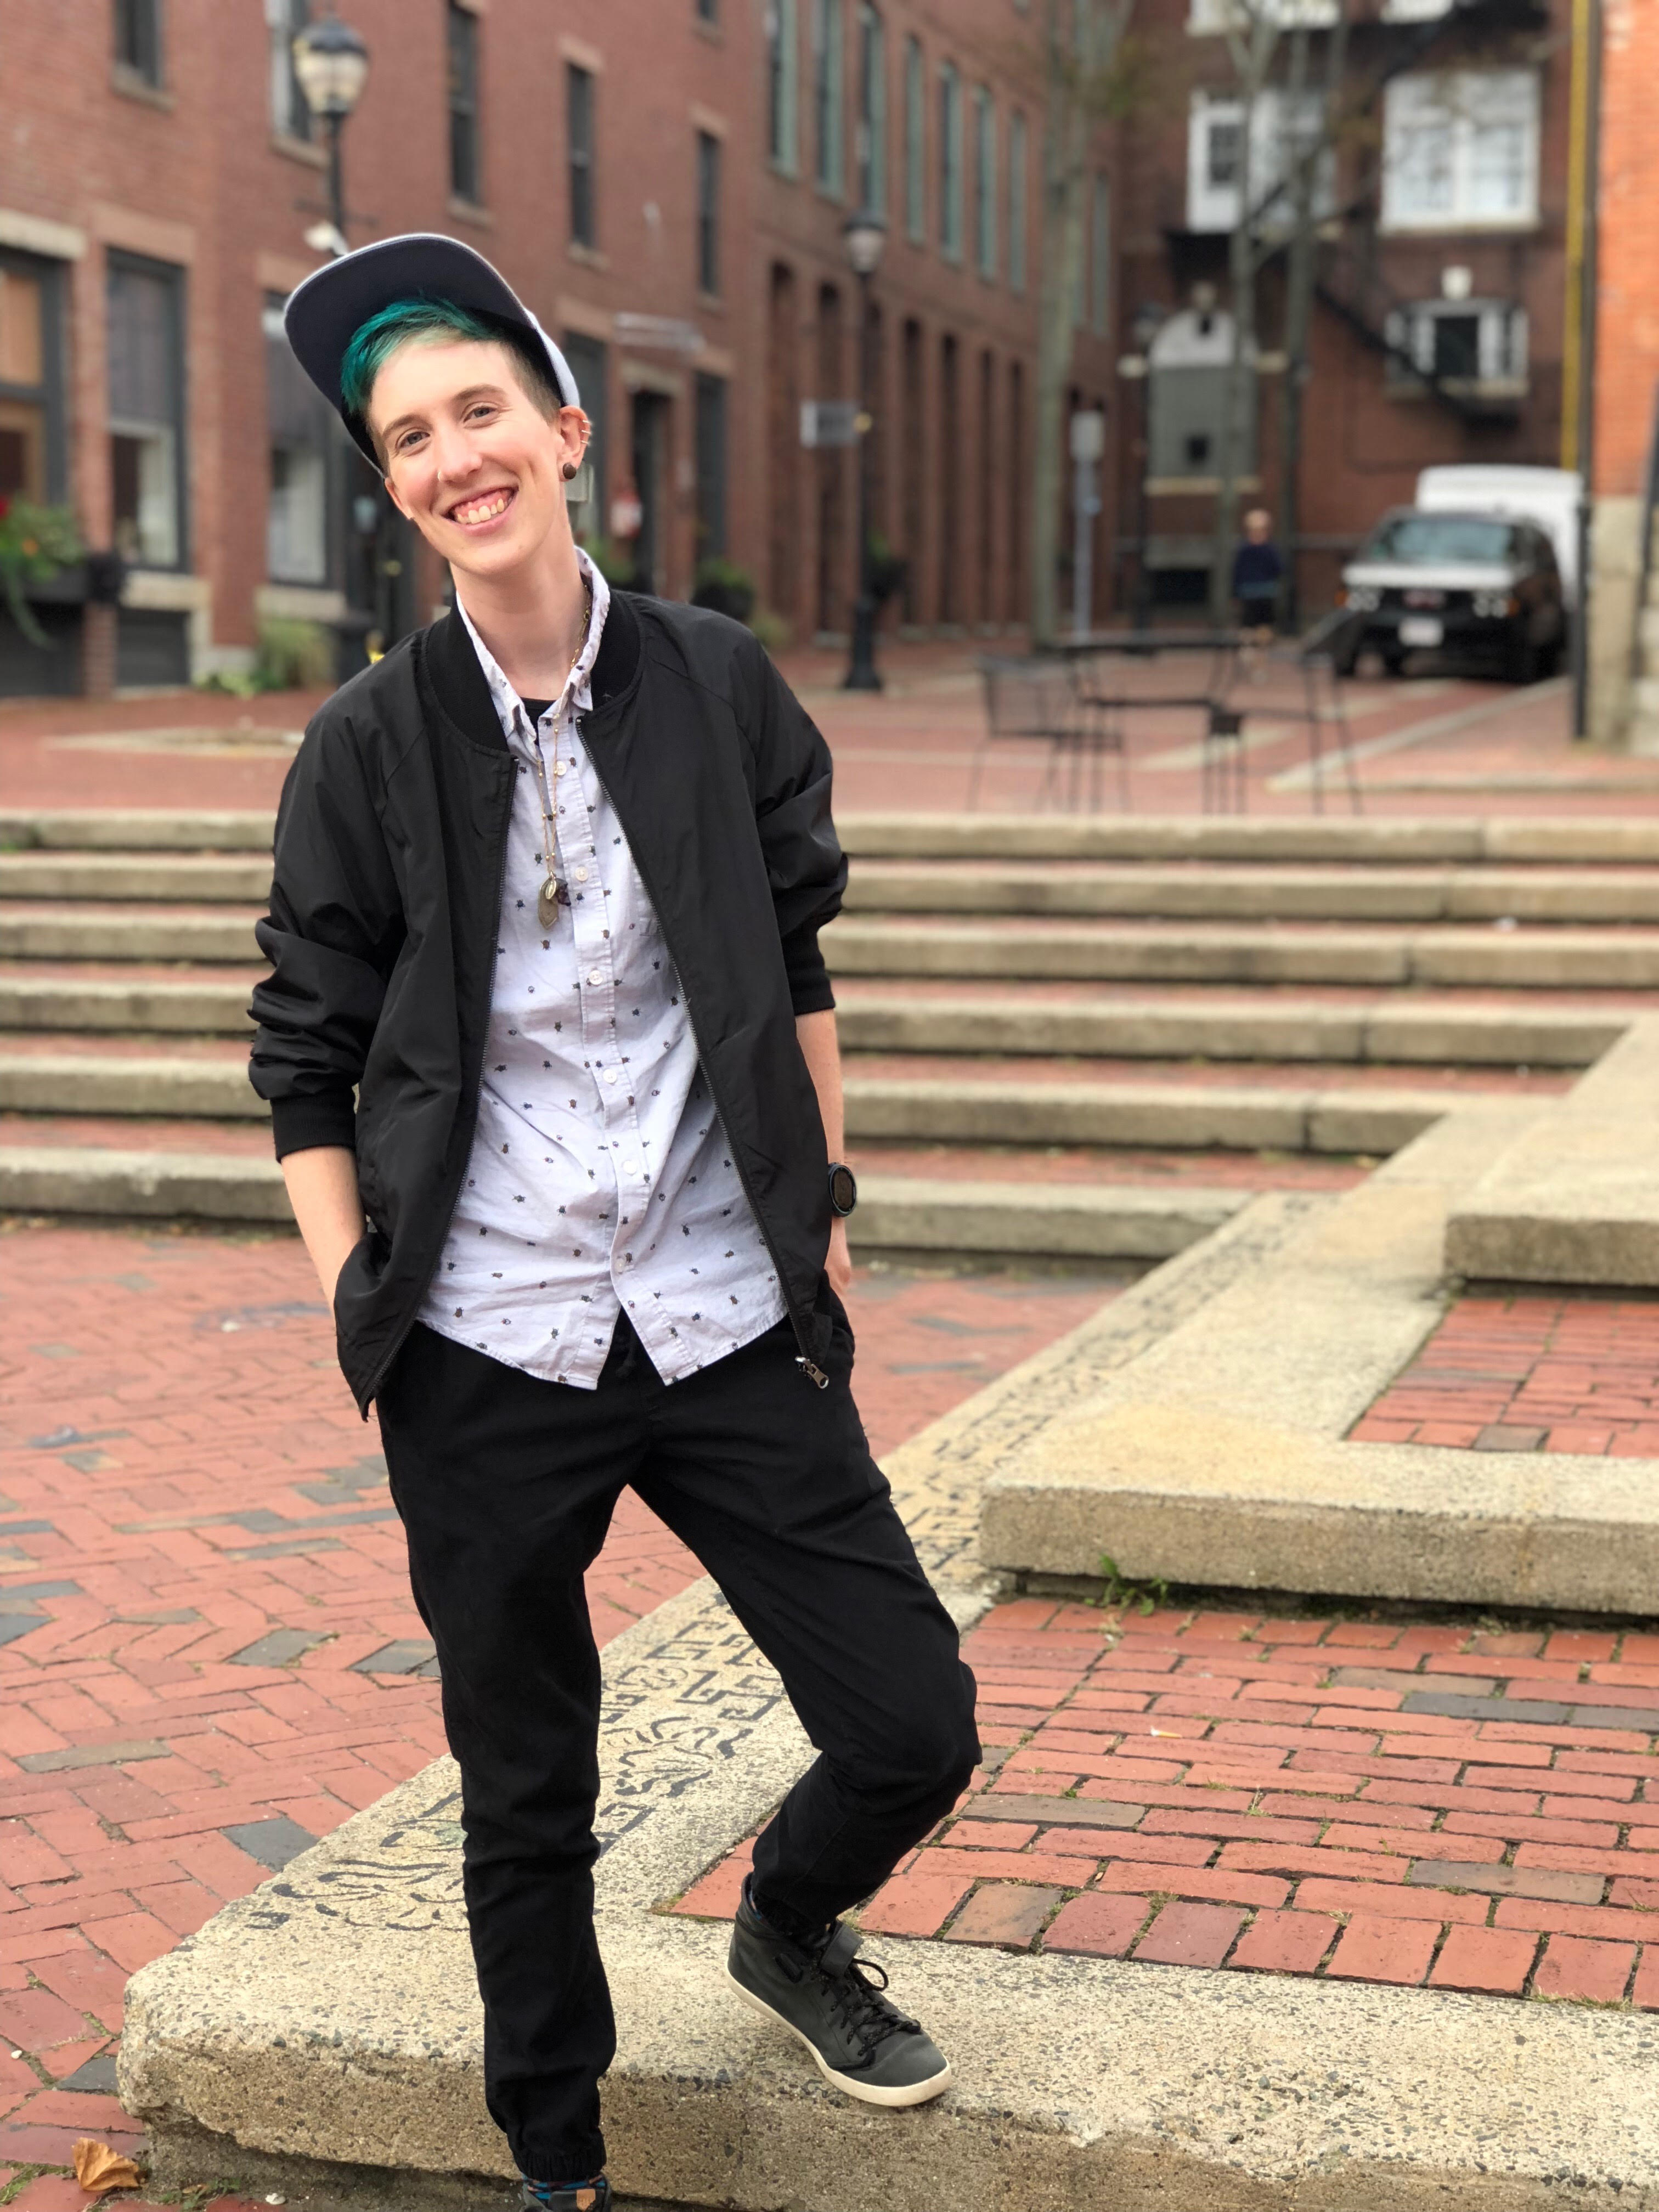 Lee,a human with blue hair, black pants, black jacket, white button up shirt, black shoes, and a snapback hat stands on a brick pathway